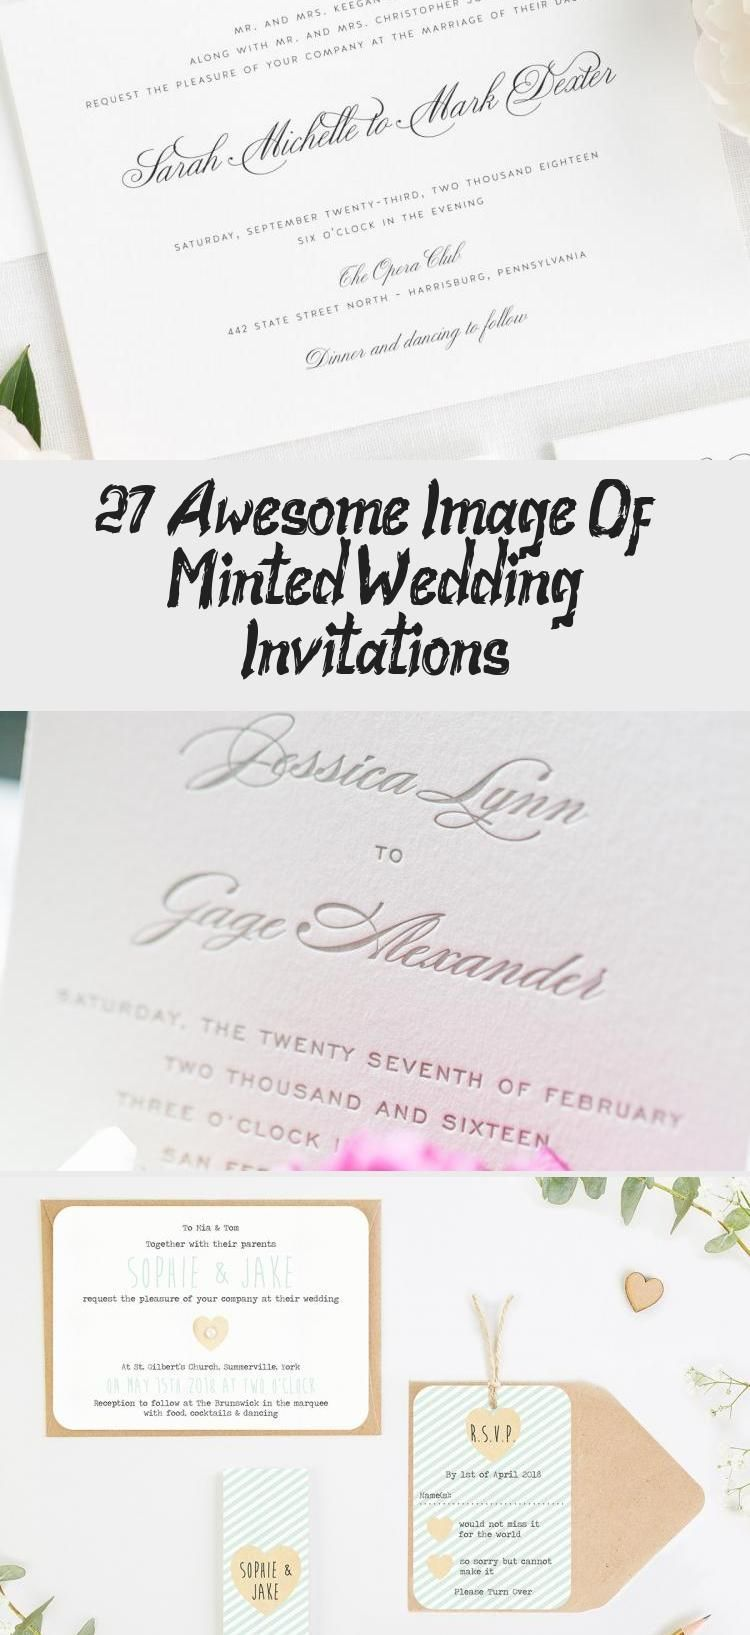 27 Awesome Image Of Minted Wedding Invitations Wedding 27 Awesome Image Of Minted W In 2020 Wedding Invitations Mint Green Mint Wedding Minted Wedding Invitations